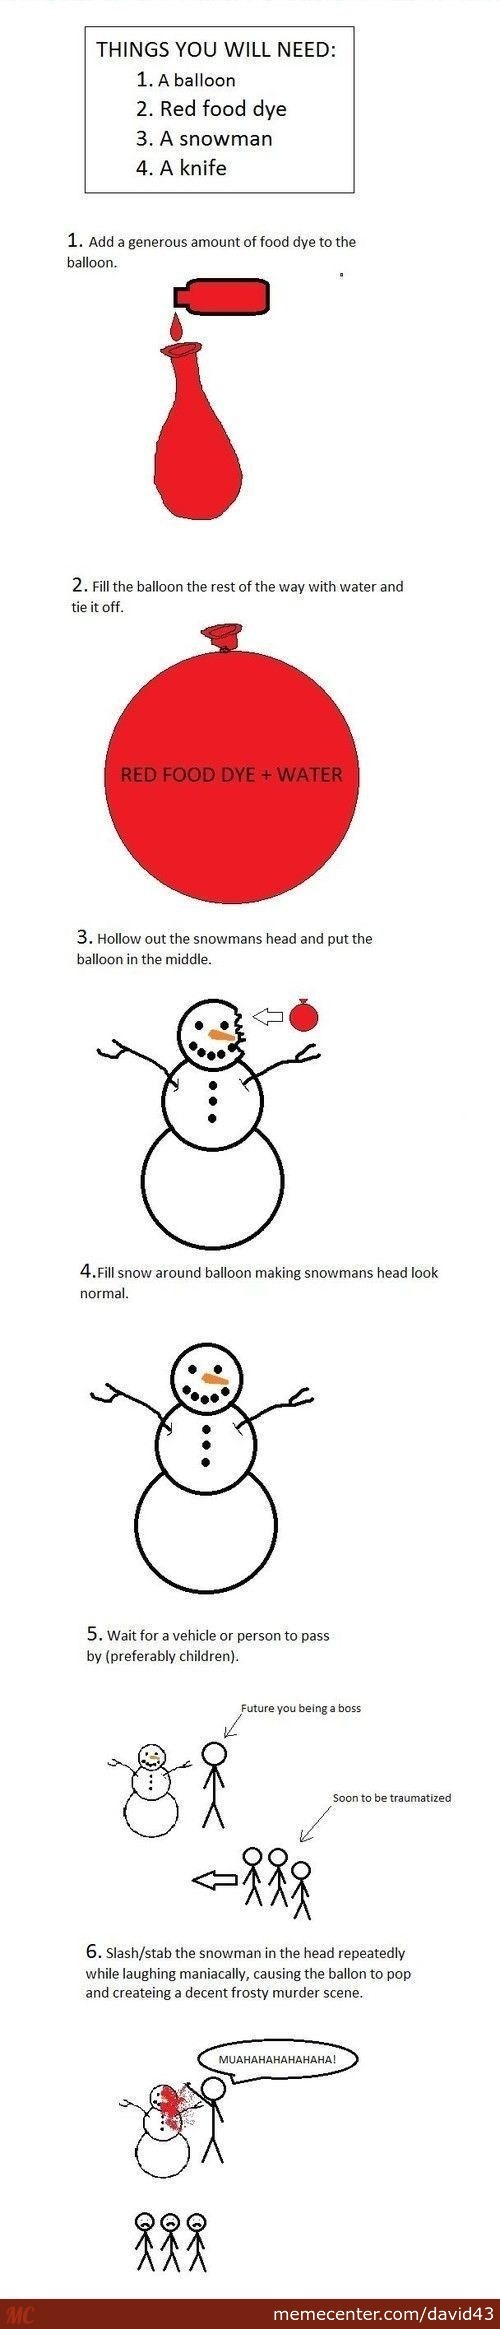 Traumatize Small Children This Winter In 6 Easy Steps!